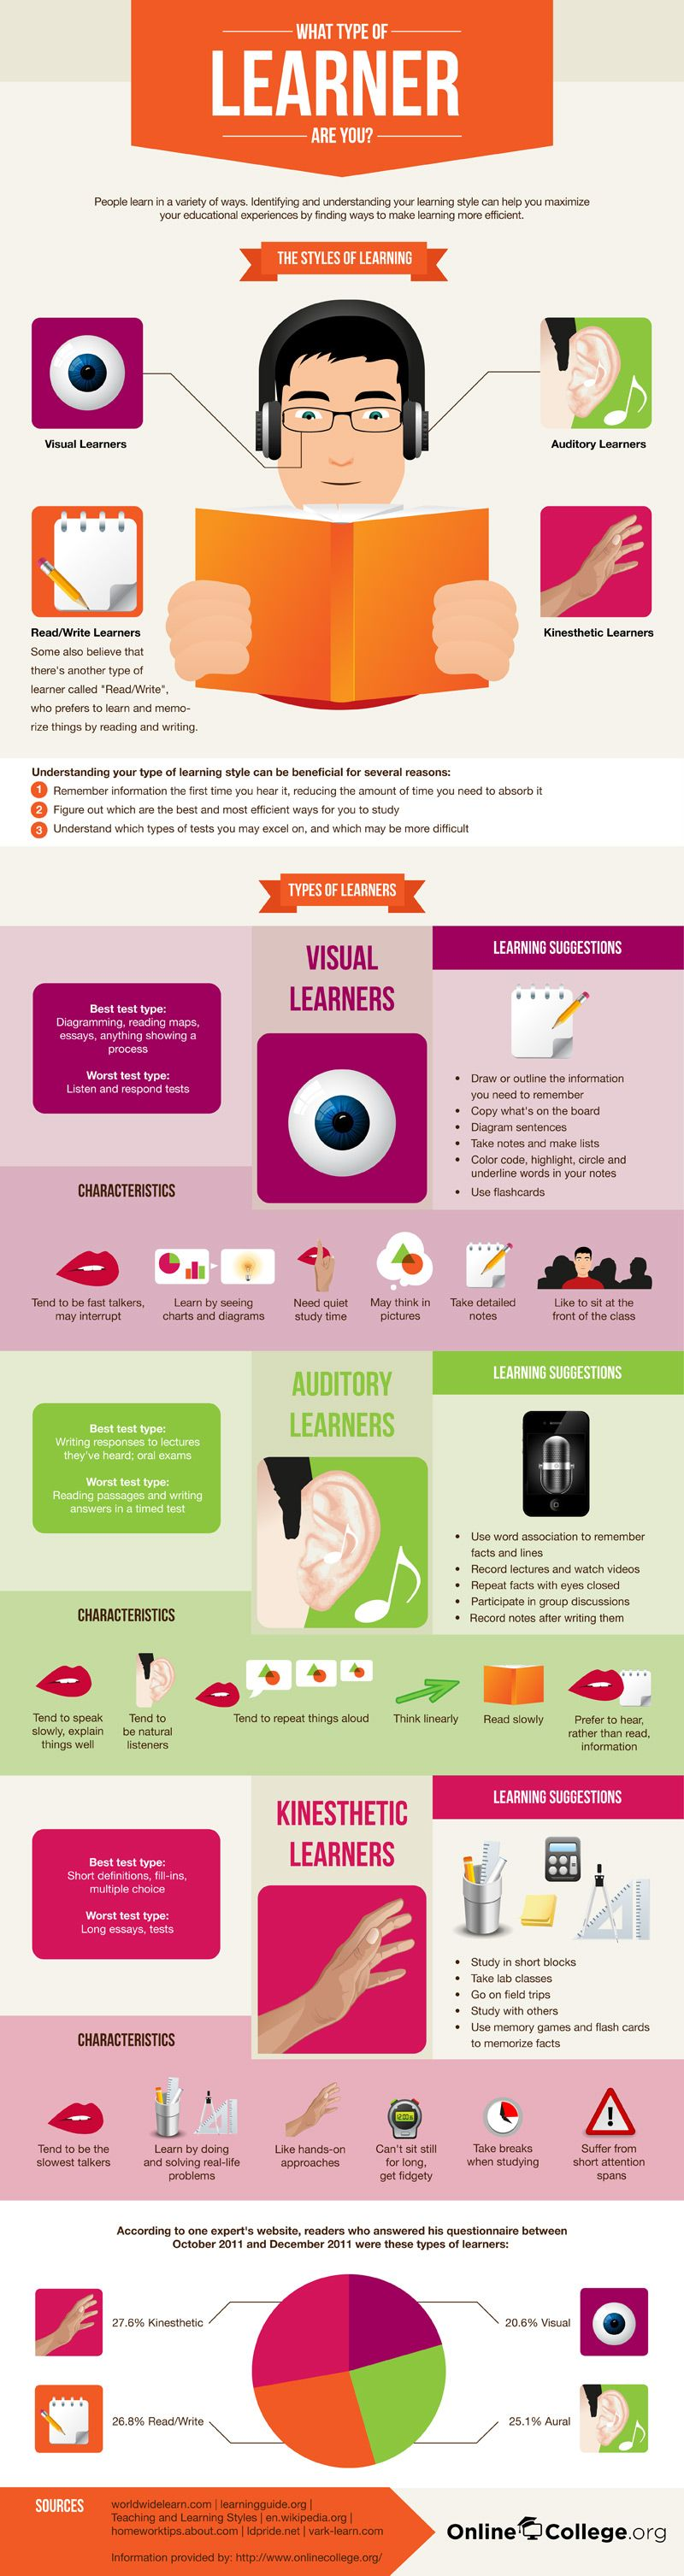 what type of learner are you i am keep in mind and teaching style according to one survery respondents were broken down as follows by learning style visual learners auditory